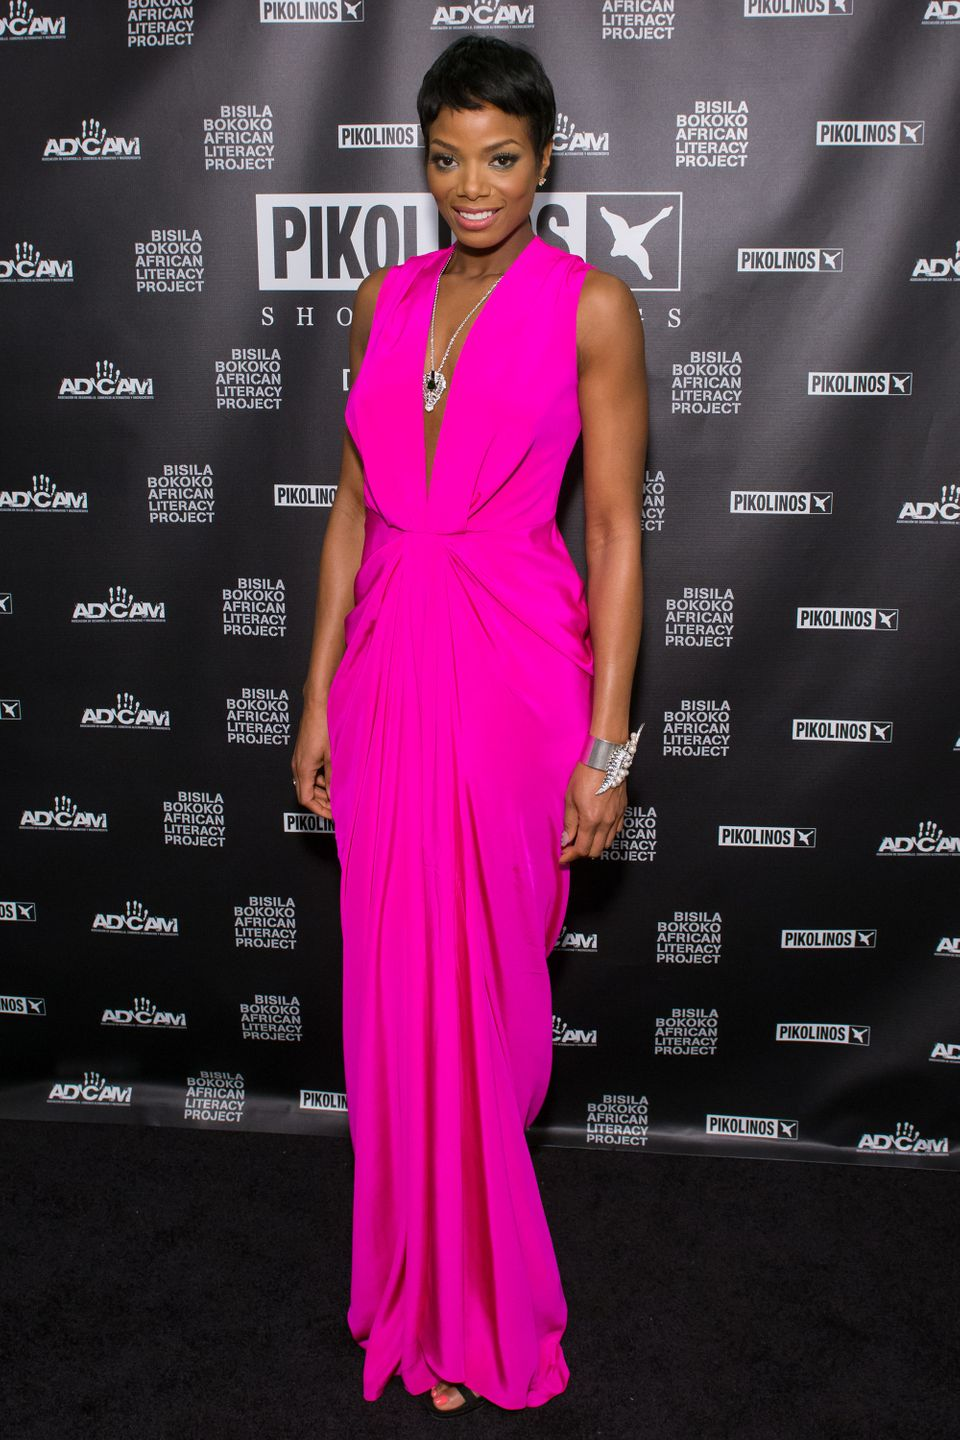 NEW YORK, NY - APRIL 17: Tai Beauchamp attends the 2013 Pikolinos Gala Dinner at the United Nations on April 17, 2013 in New